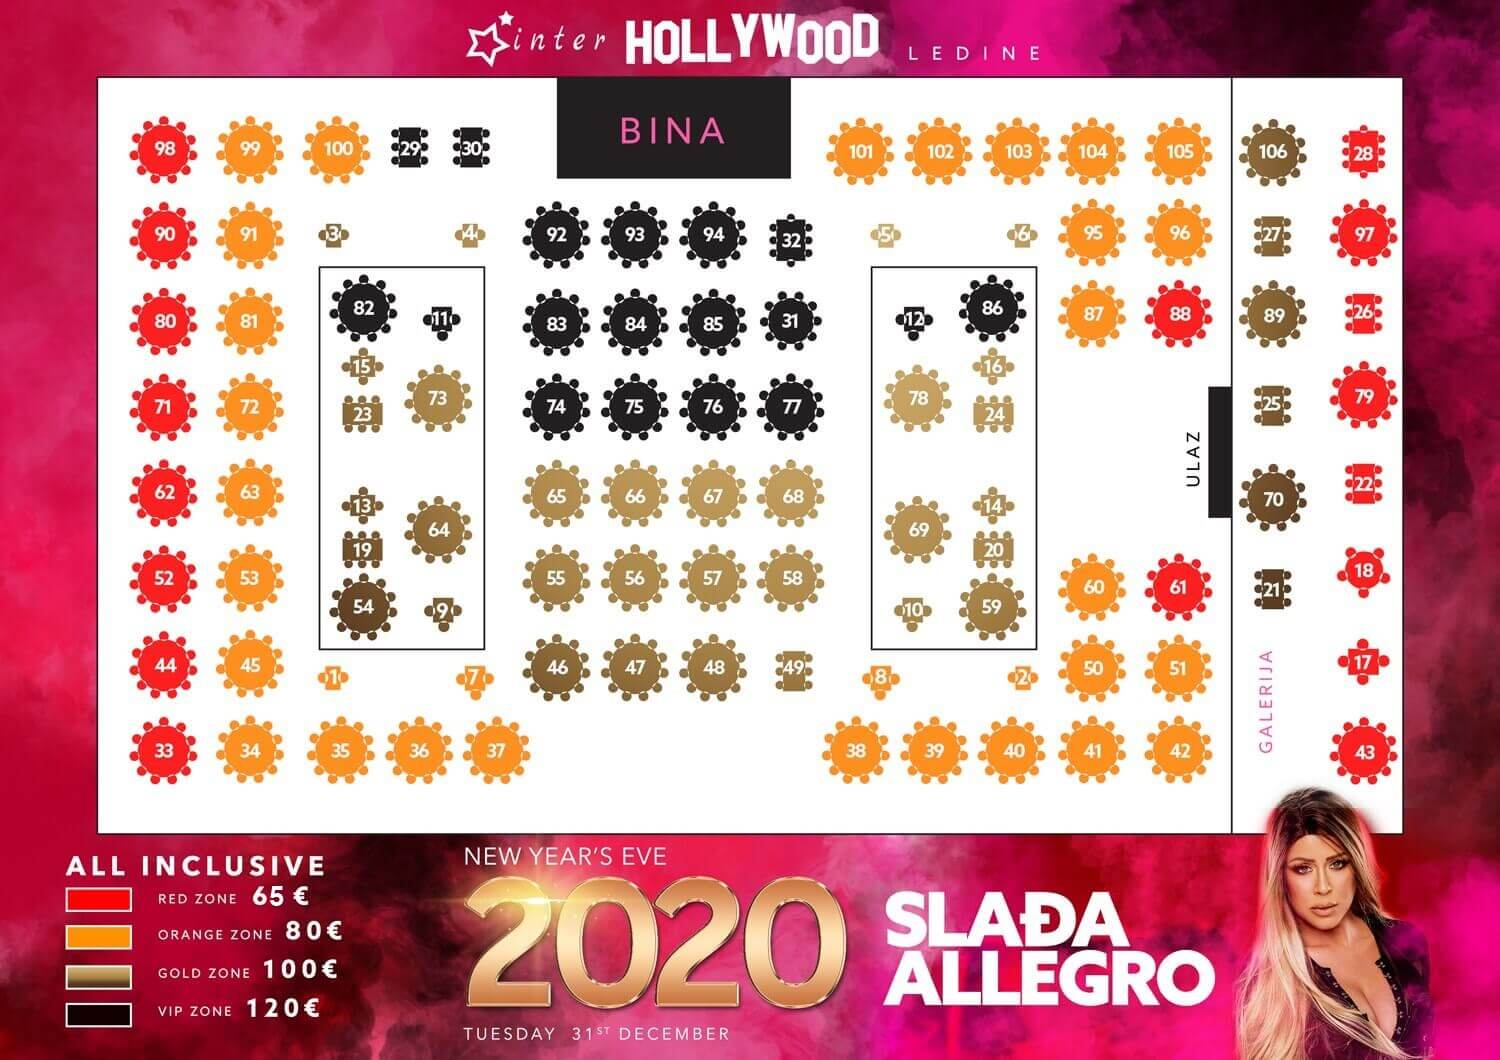 sladja allegro nova godina hollywood